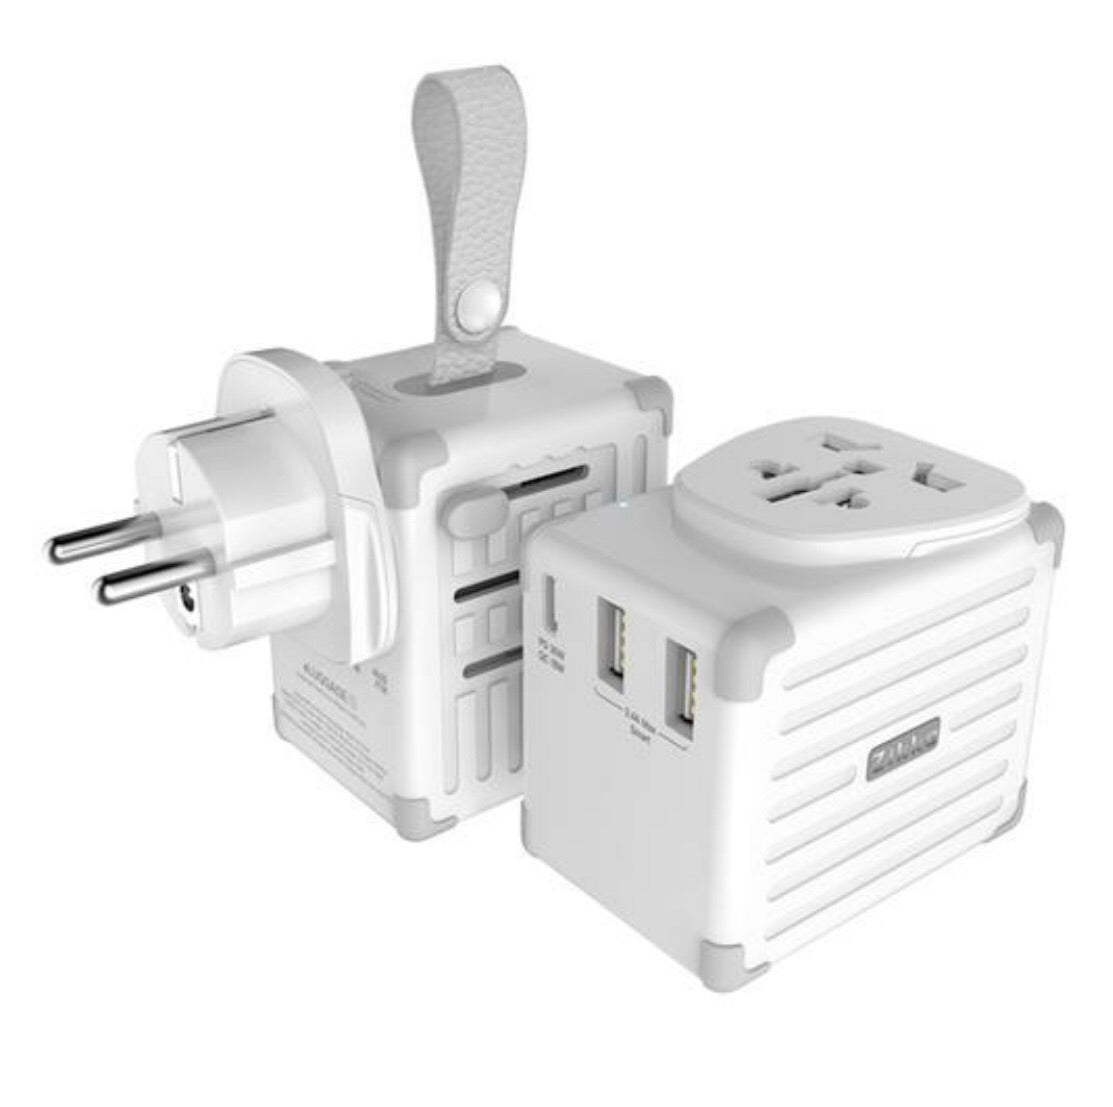 Zikko eLUGGAGE X Worldwide Travel Smart Adaptor USB 42W (EX300)